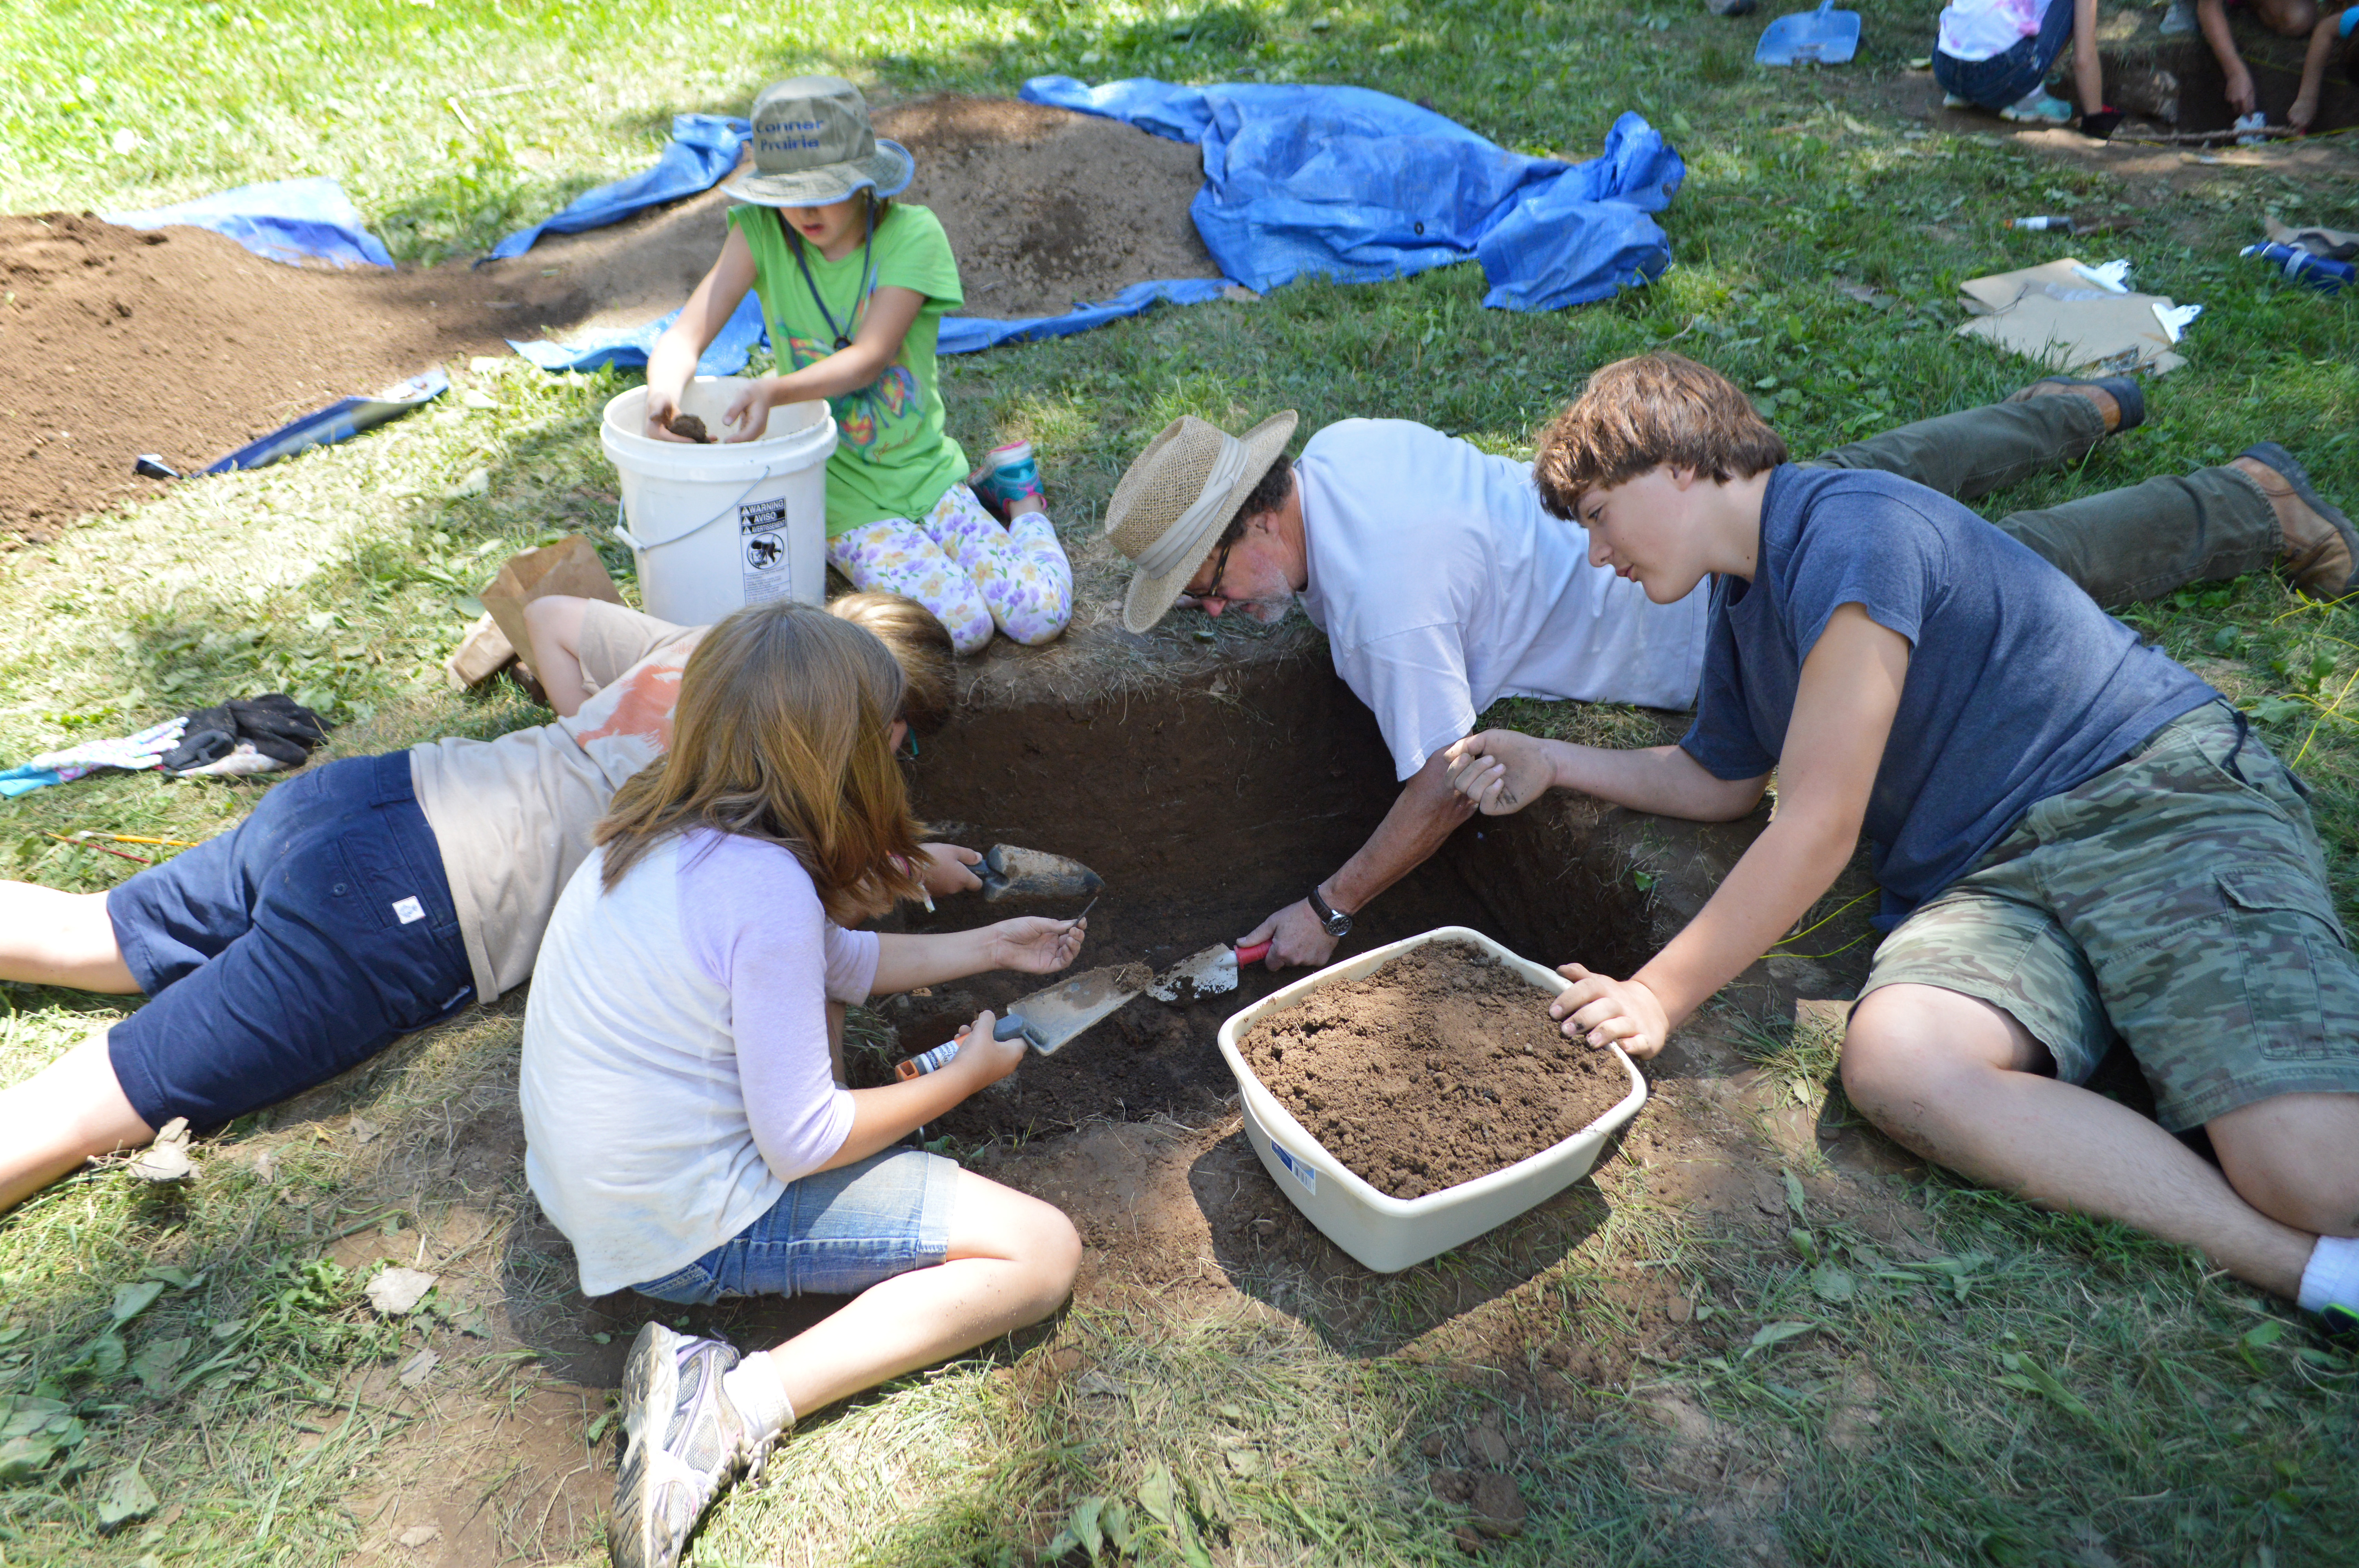 Conner Prairie archaeology campers uncover finds during camp. (Submitted photo)